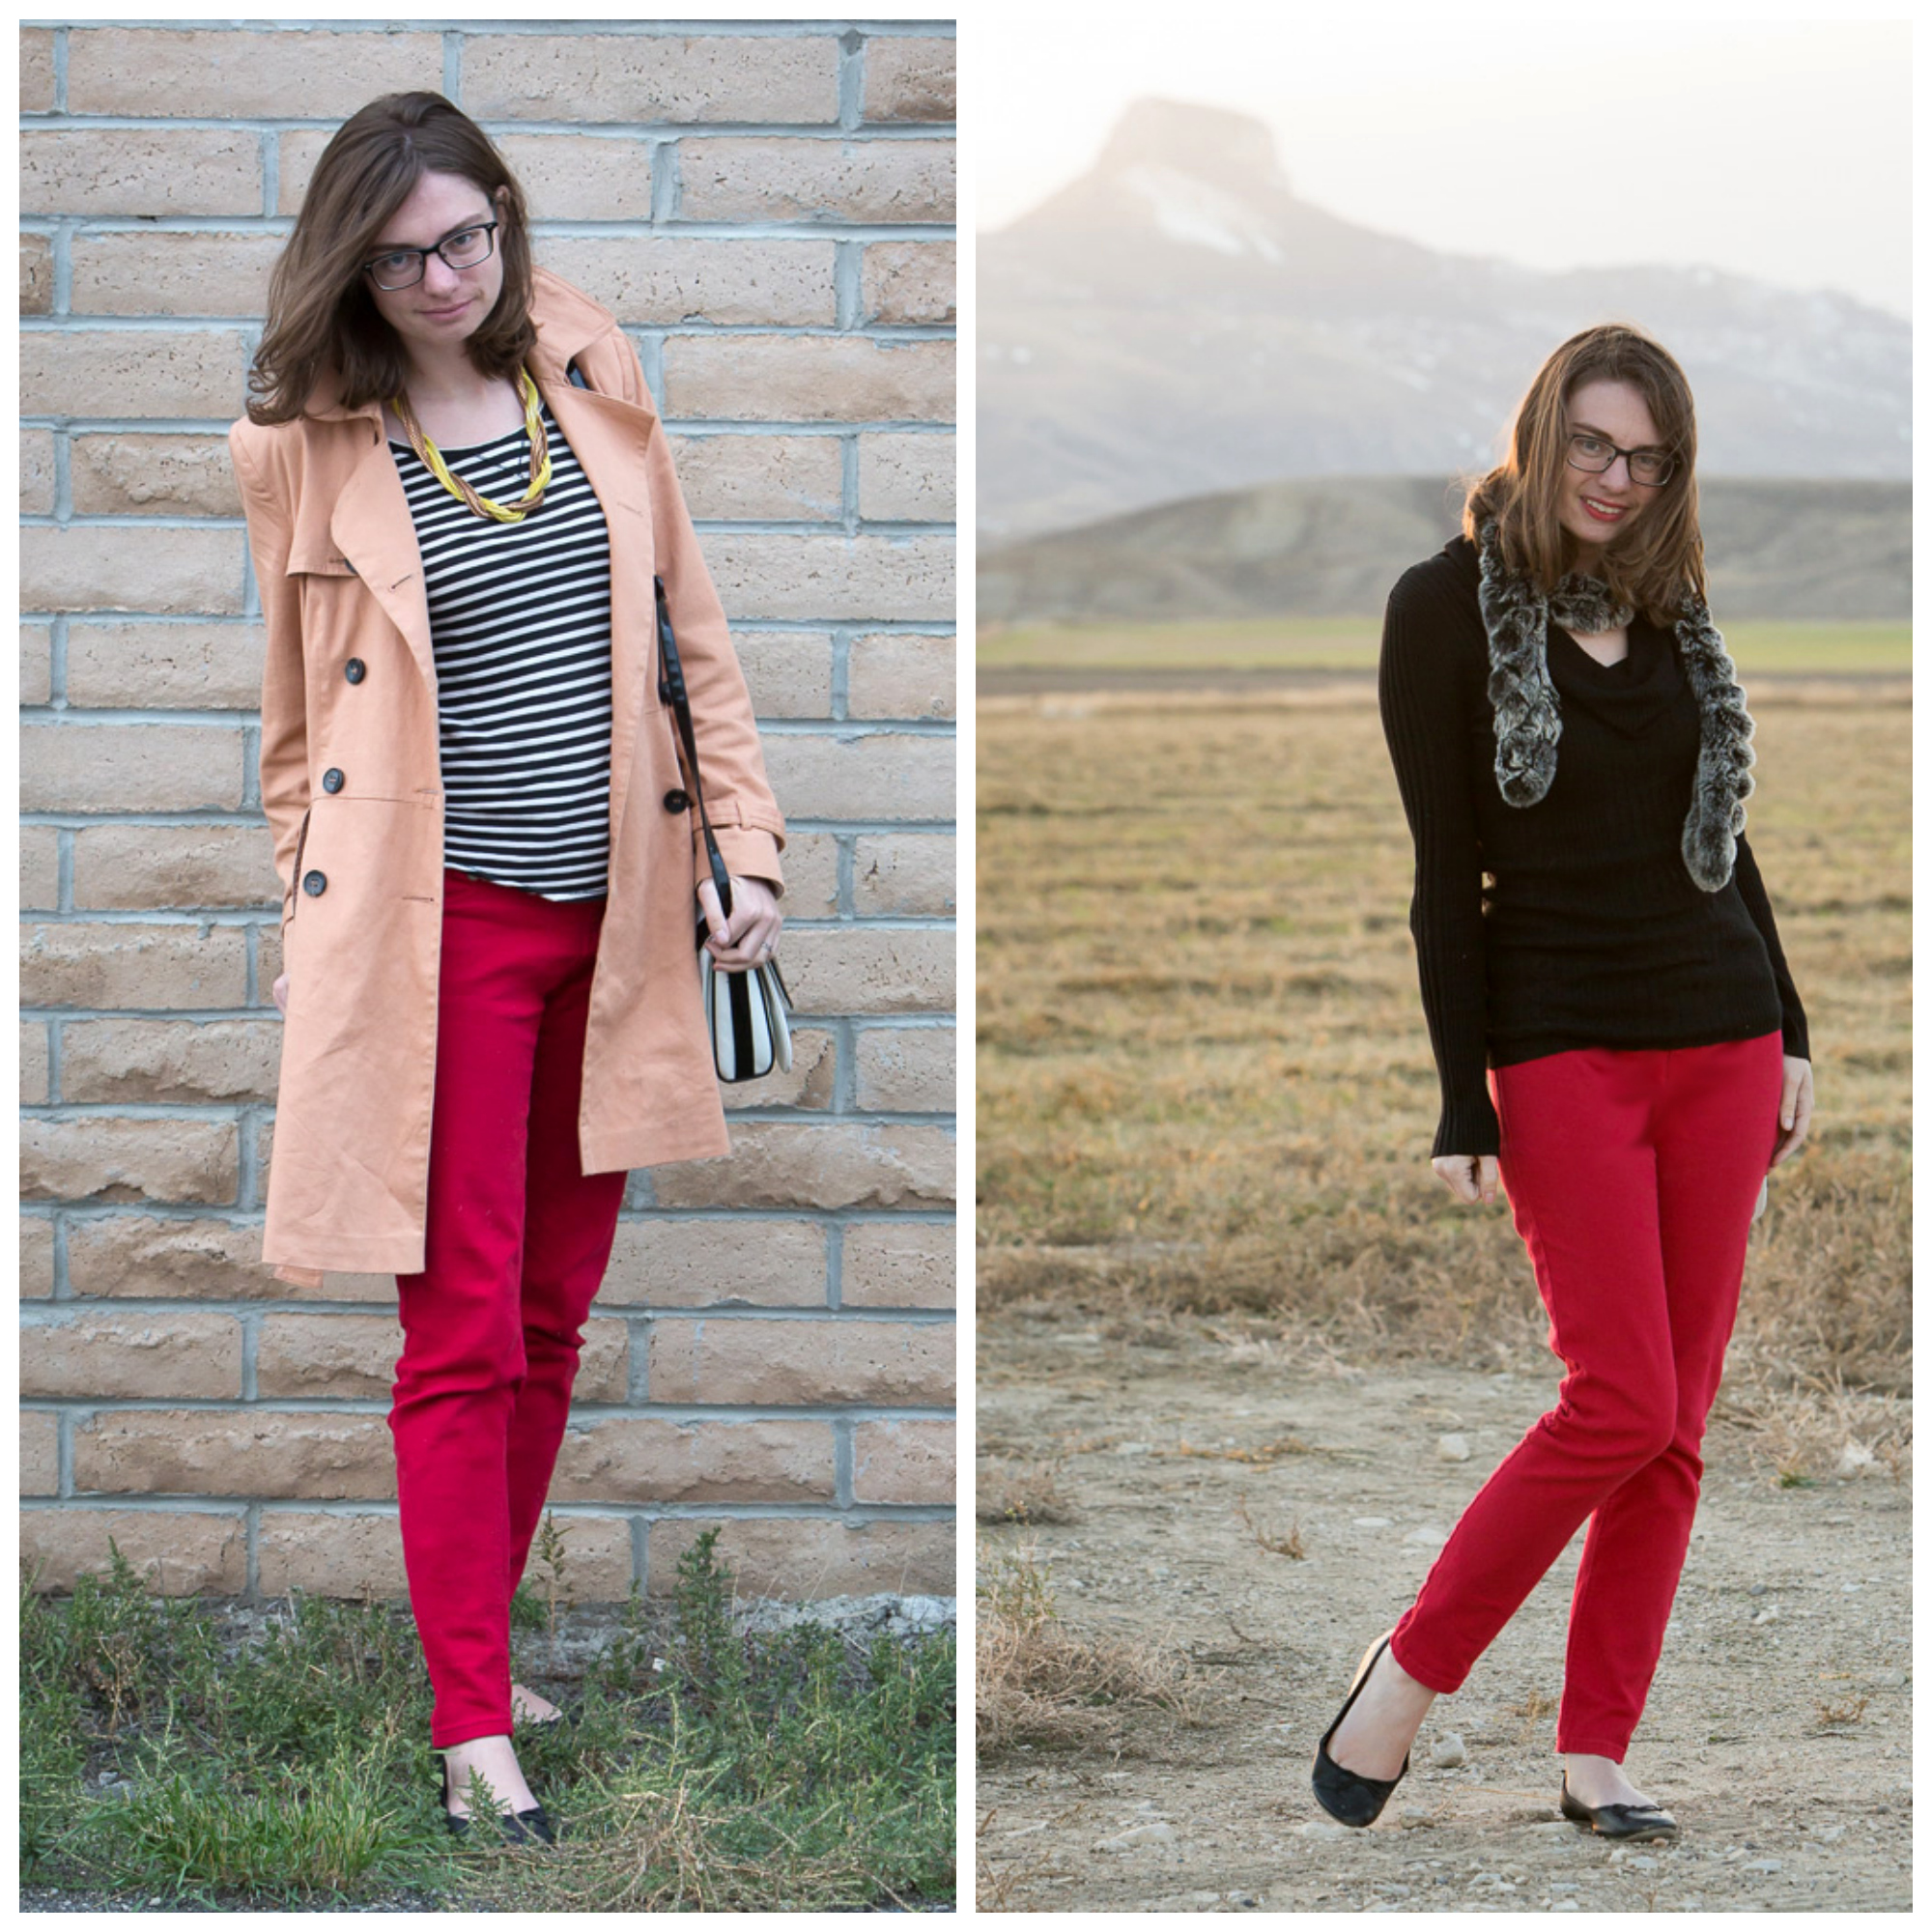 remix, red jeans, trench coat, striped shirt, black sweater, fur, never fully dressed, withoutastyle, wyoming,